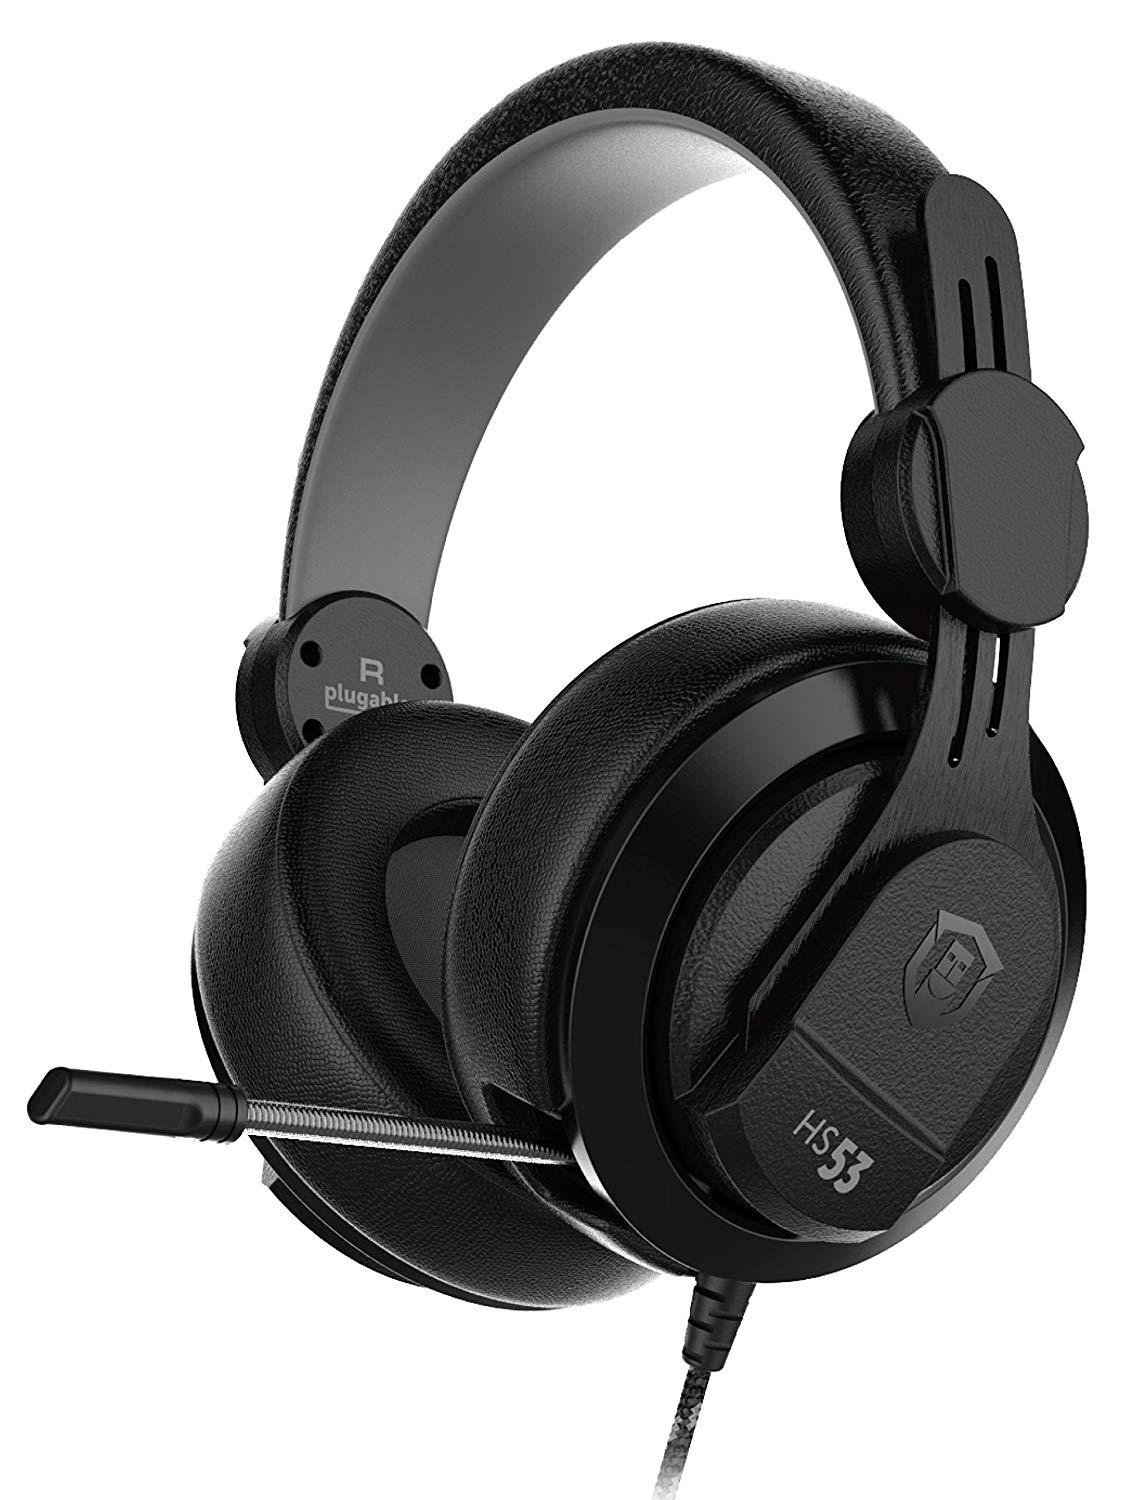 Image of Onyx HS53 performance gaming headset